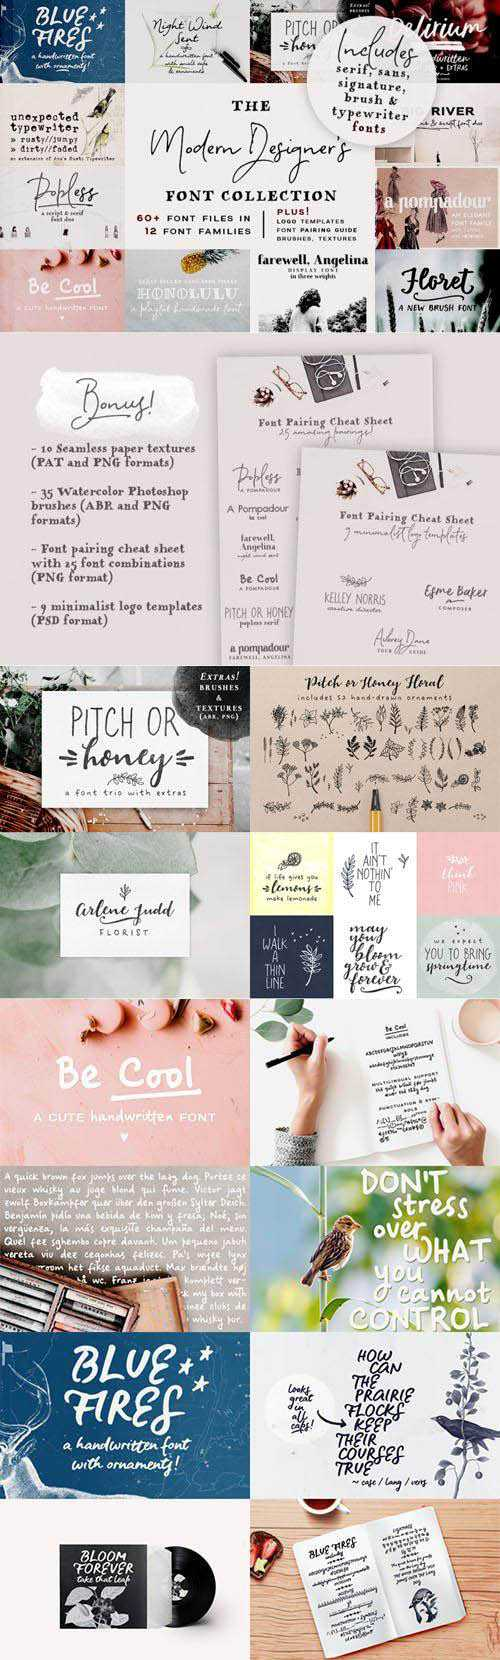 The Modern Designer's Font Collection + 9 Logo PSD Templates